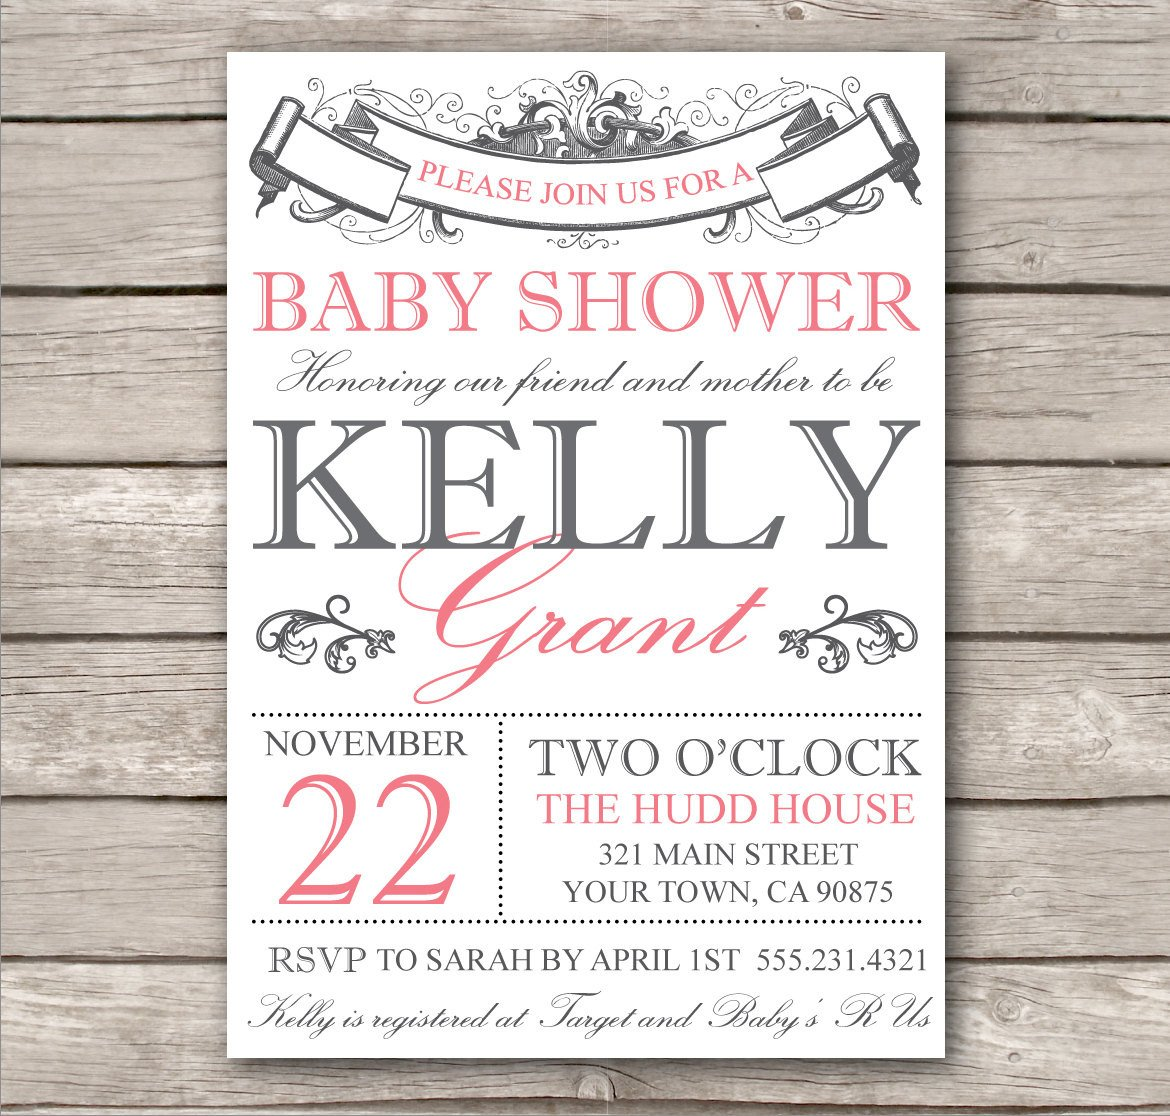 Diy Baby Shower Invitation Templates Bridal Shower Invitation or Baby Shower Invitation by